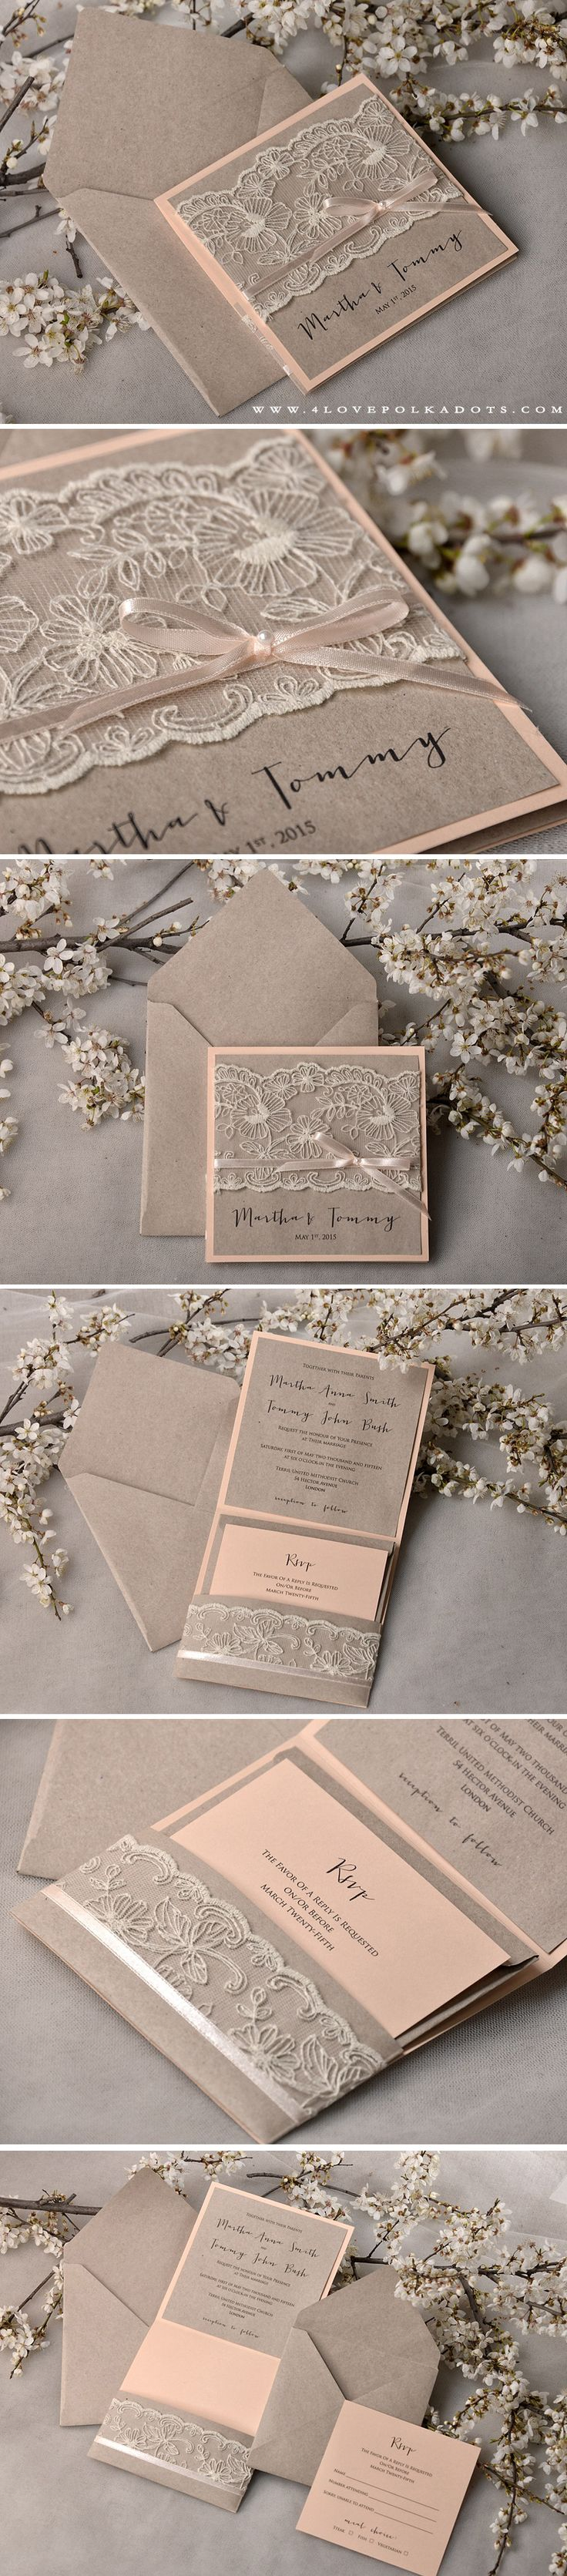 Peach u0026 Eco Lace Wedding Invitations handmade